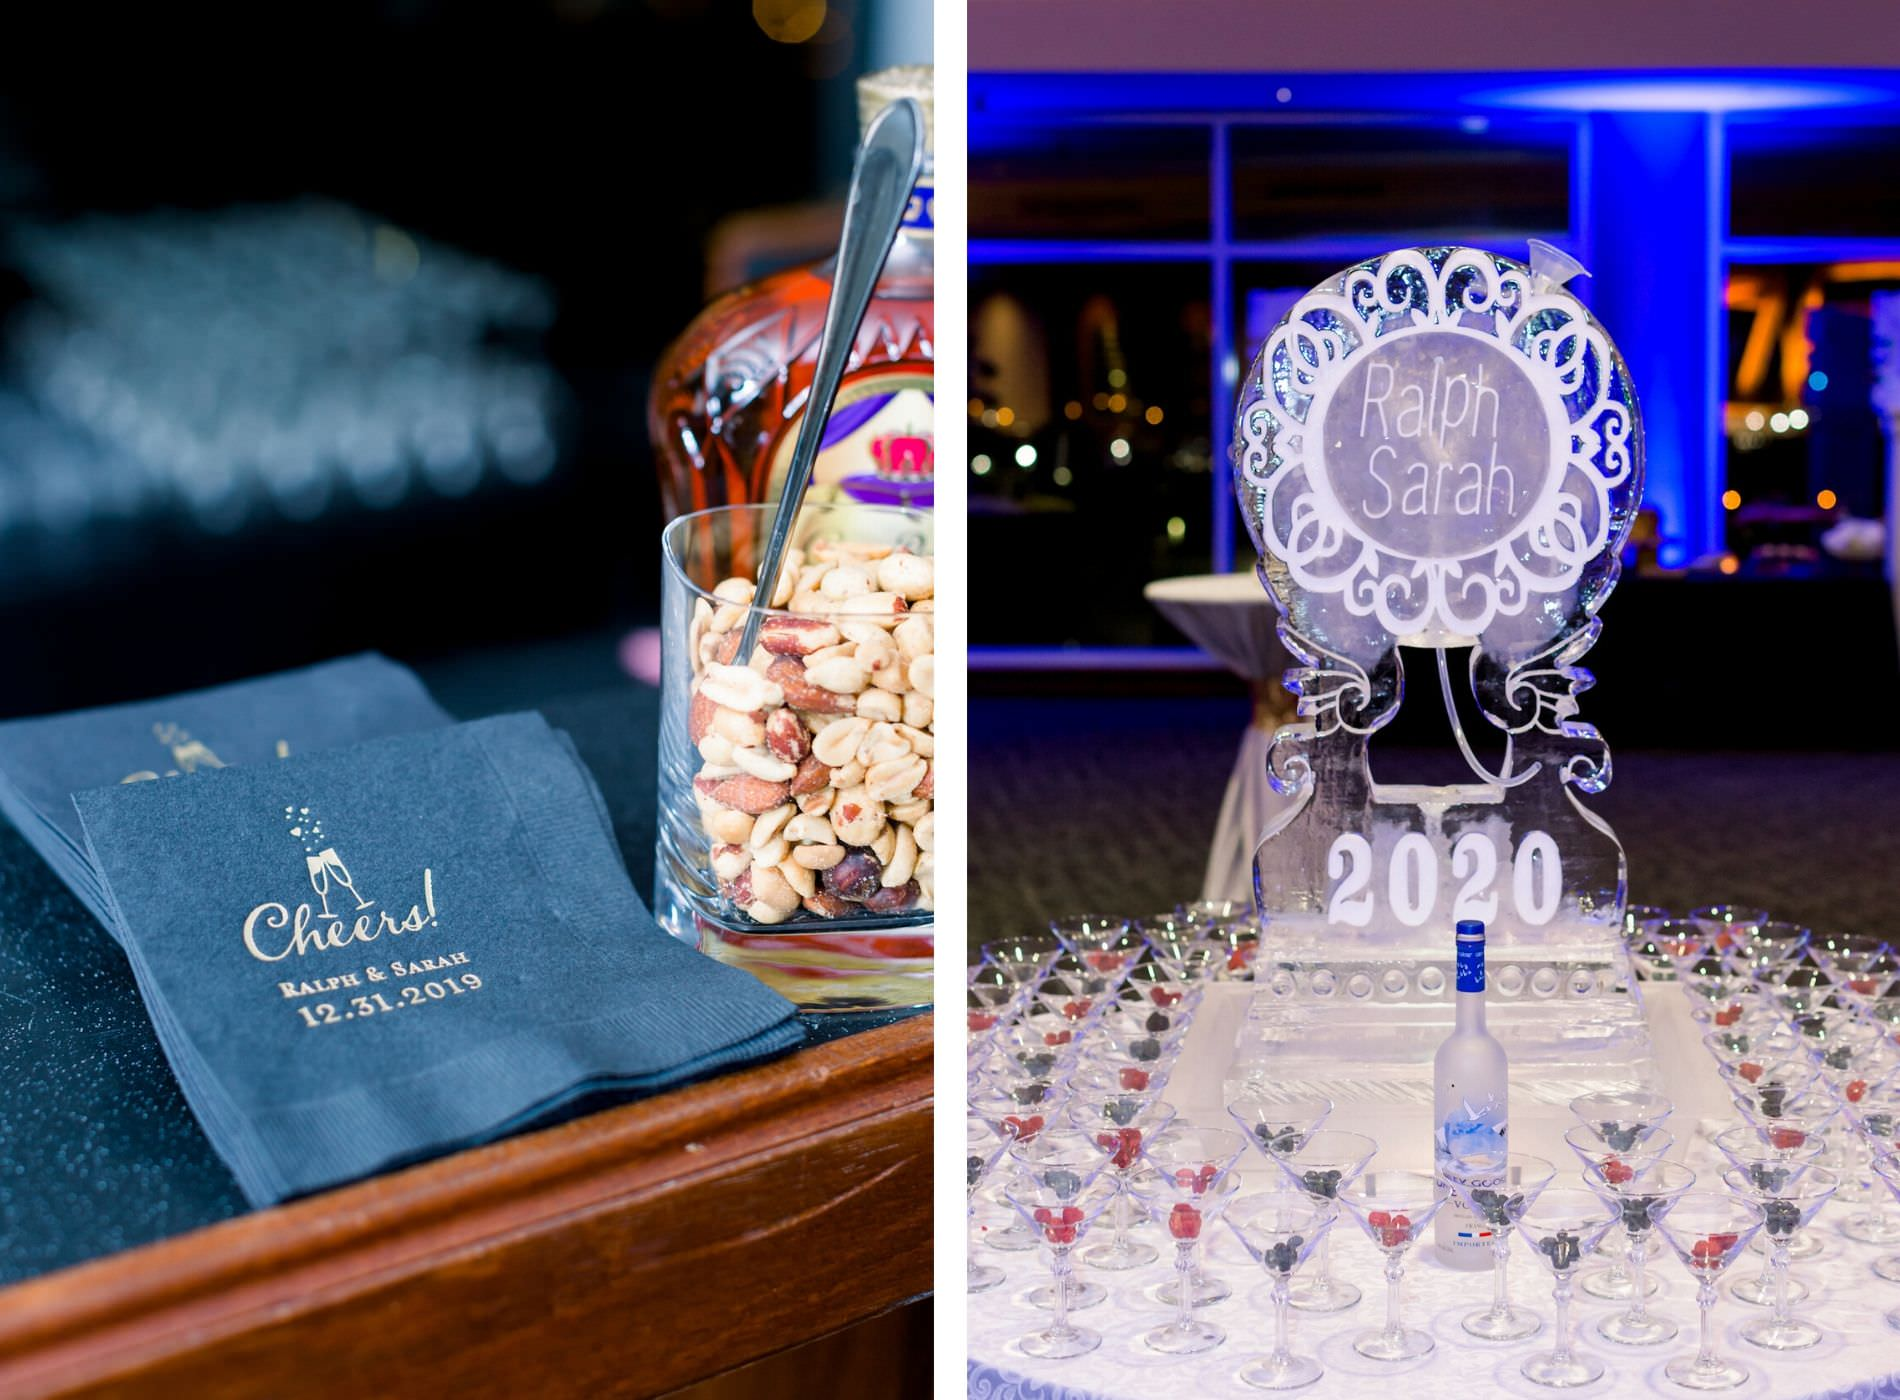 New Year's Eve Wedding Reception Decor, Custom Navy Blue and Gold Font Napkins, Personalized Ice Sculptures and Vodka Martini Glass Table | Wedding Photographer Shauna and Jordon Photography | Tampa Bay Wedding Planner UNIQUE Weddings + Events | Wedding Rentals A Chair Affair